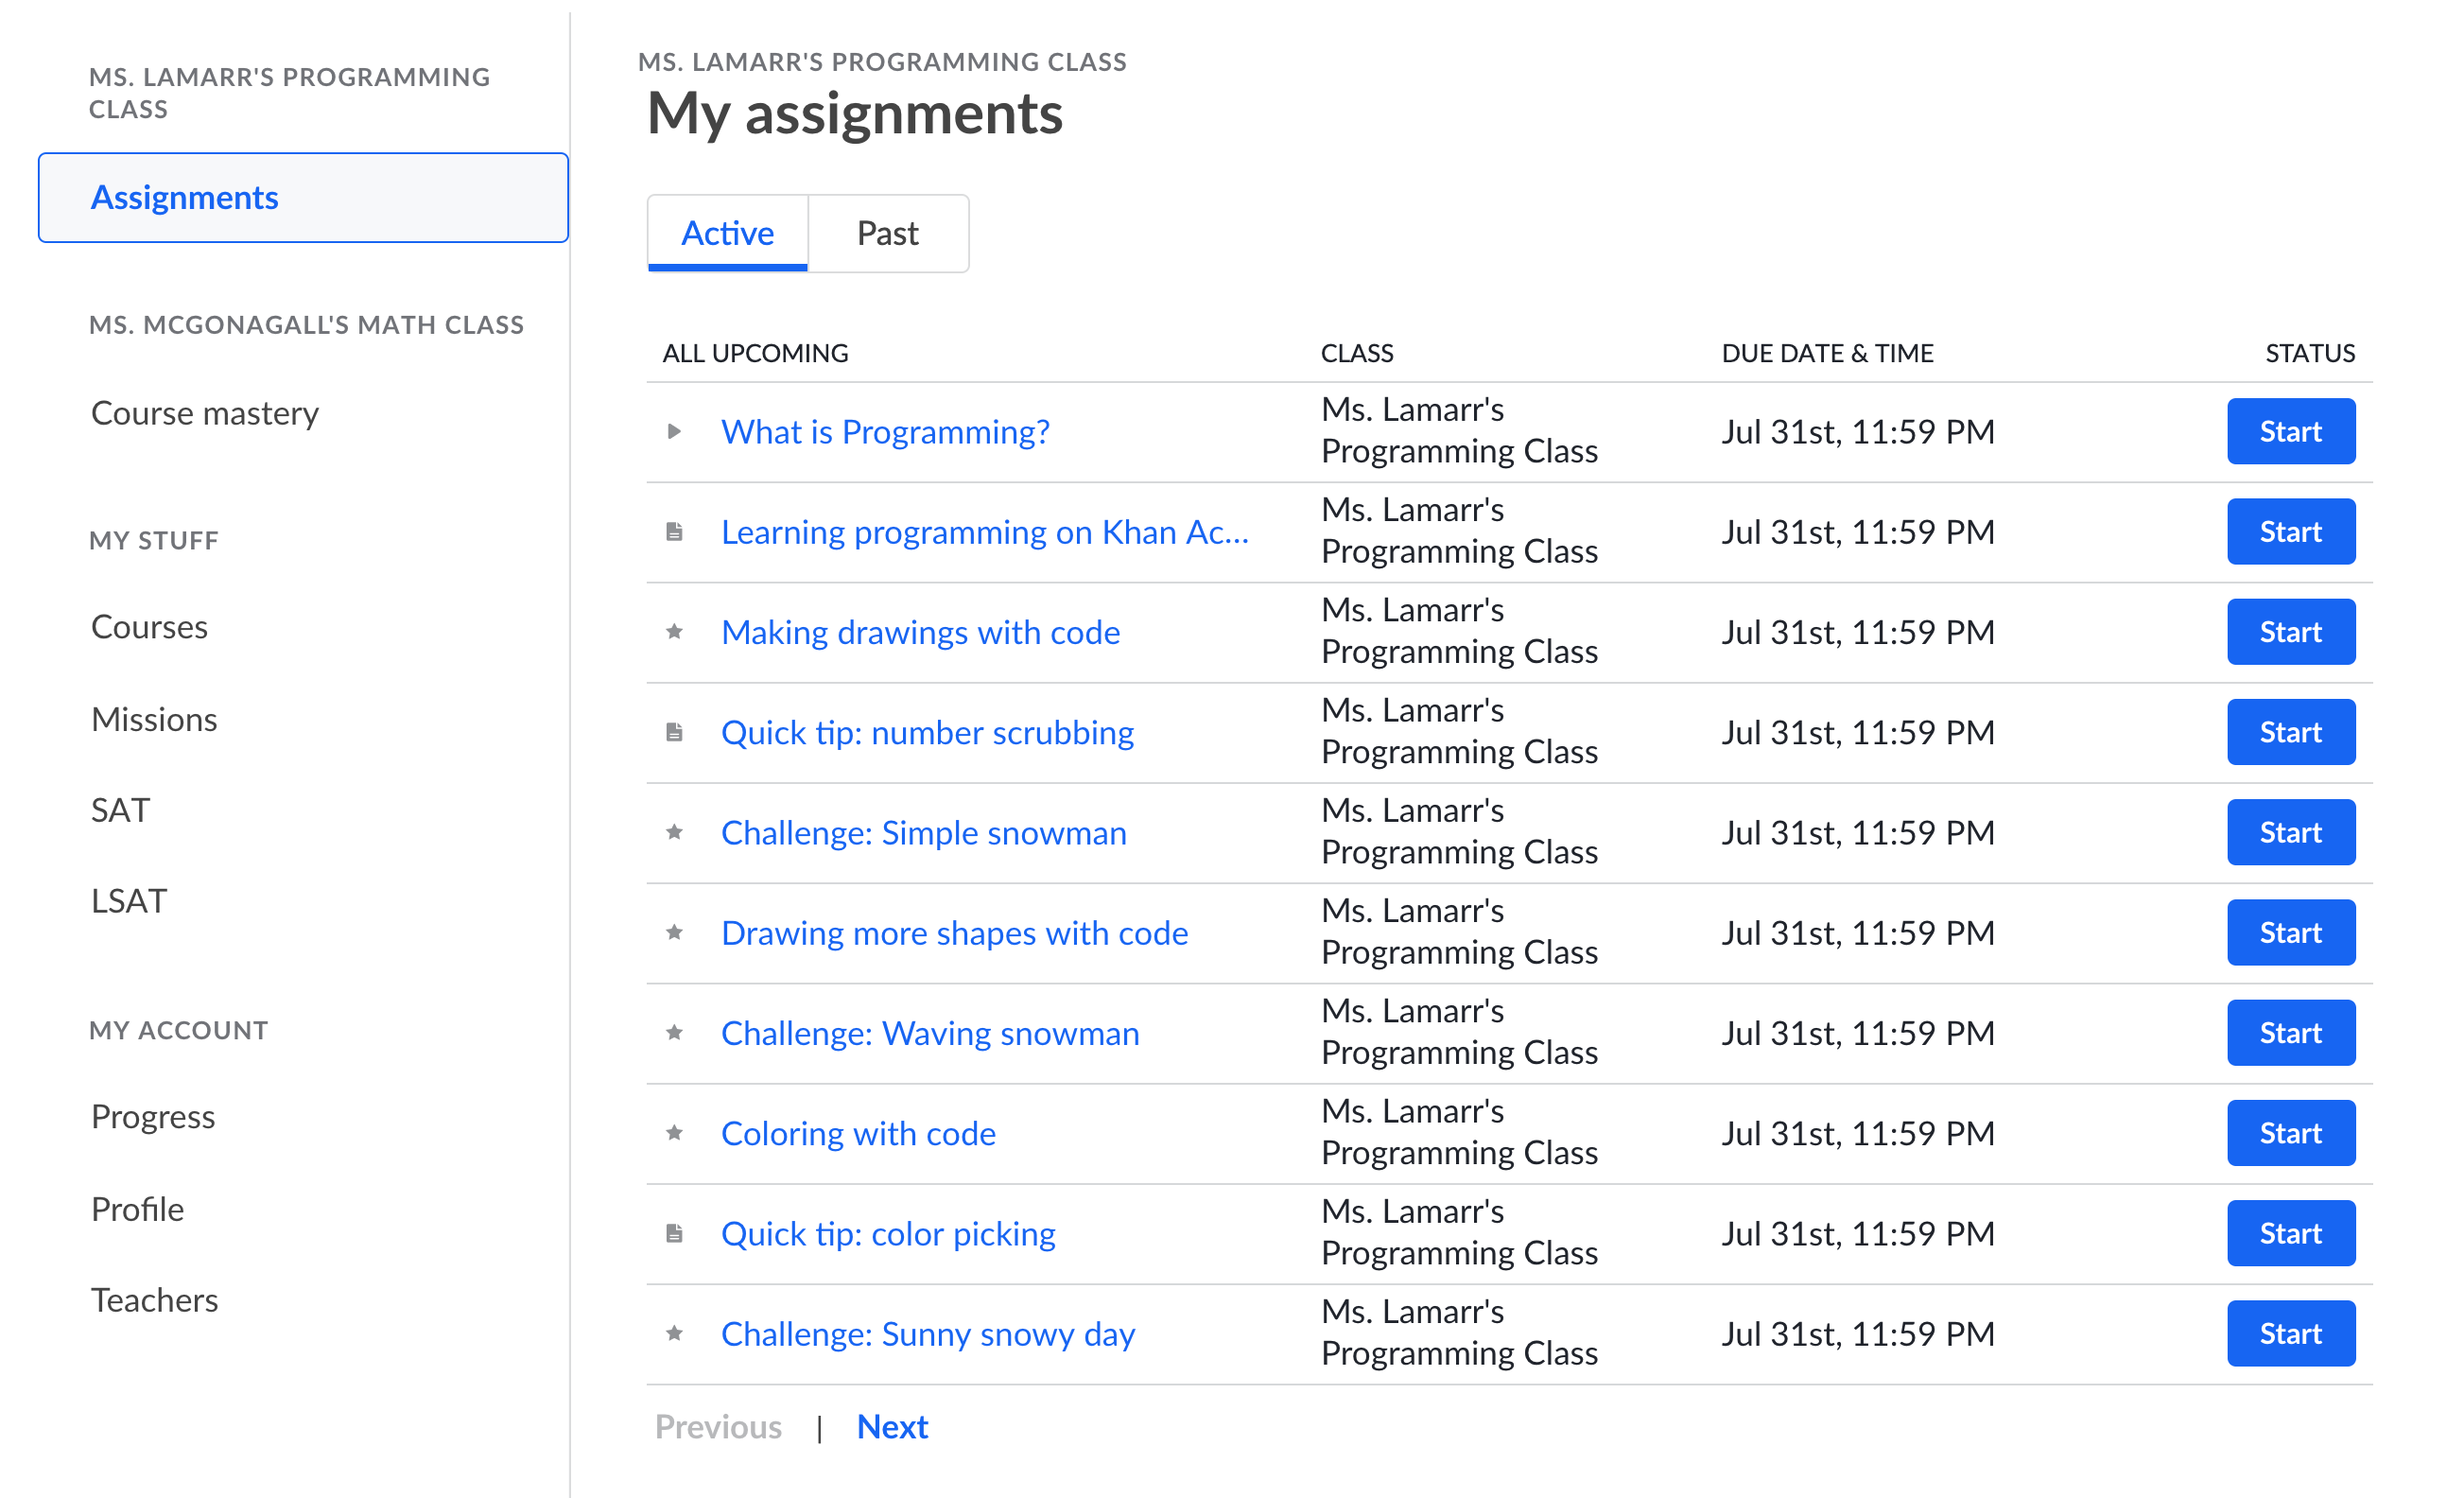 Student_s_View_of_Assignments.png